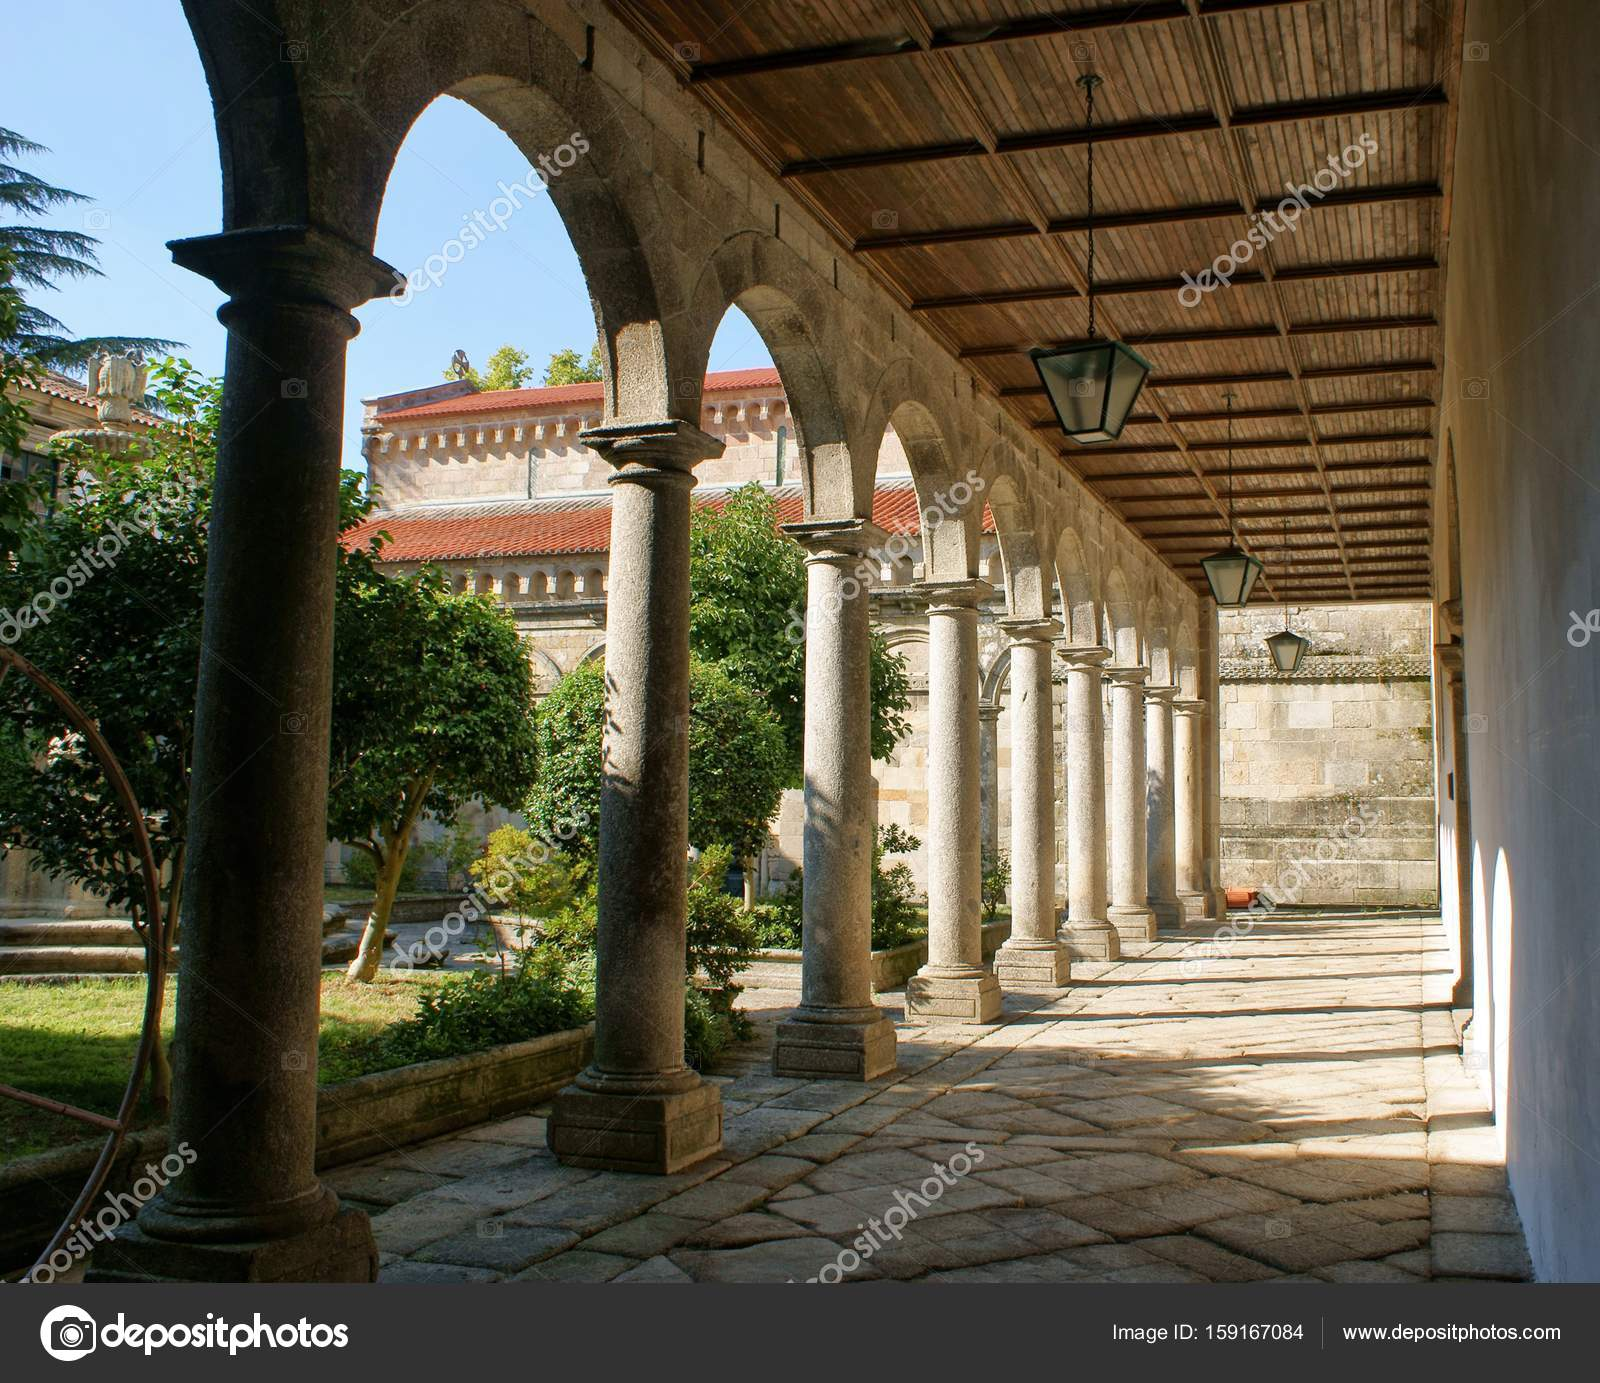 Cloister of romanesque monastery of Paço de Sousa in Penafiel, north of Portugal